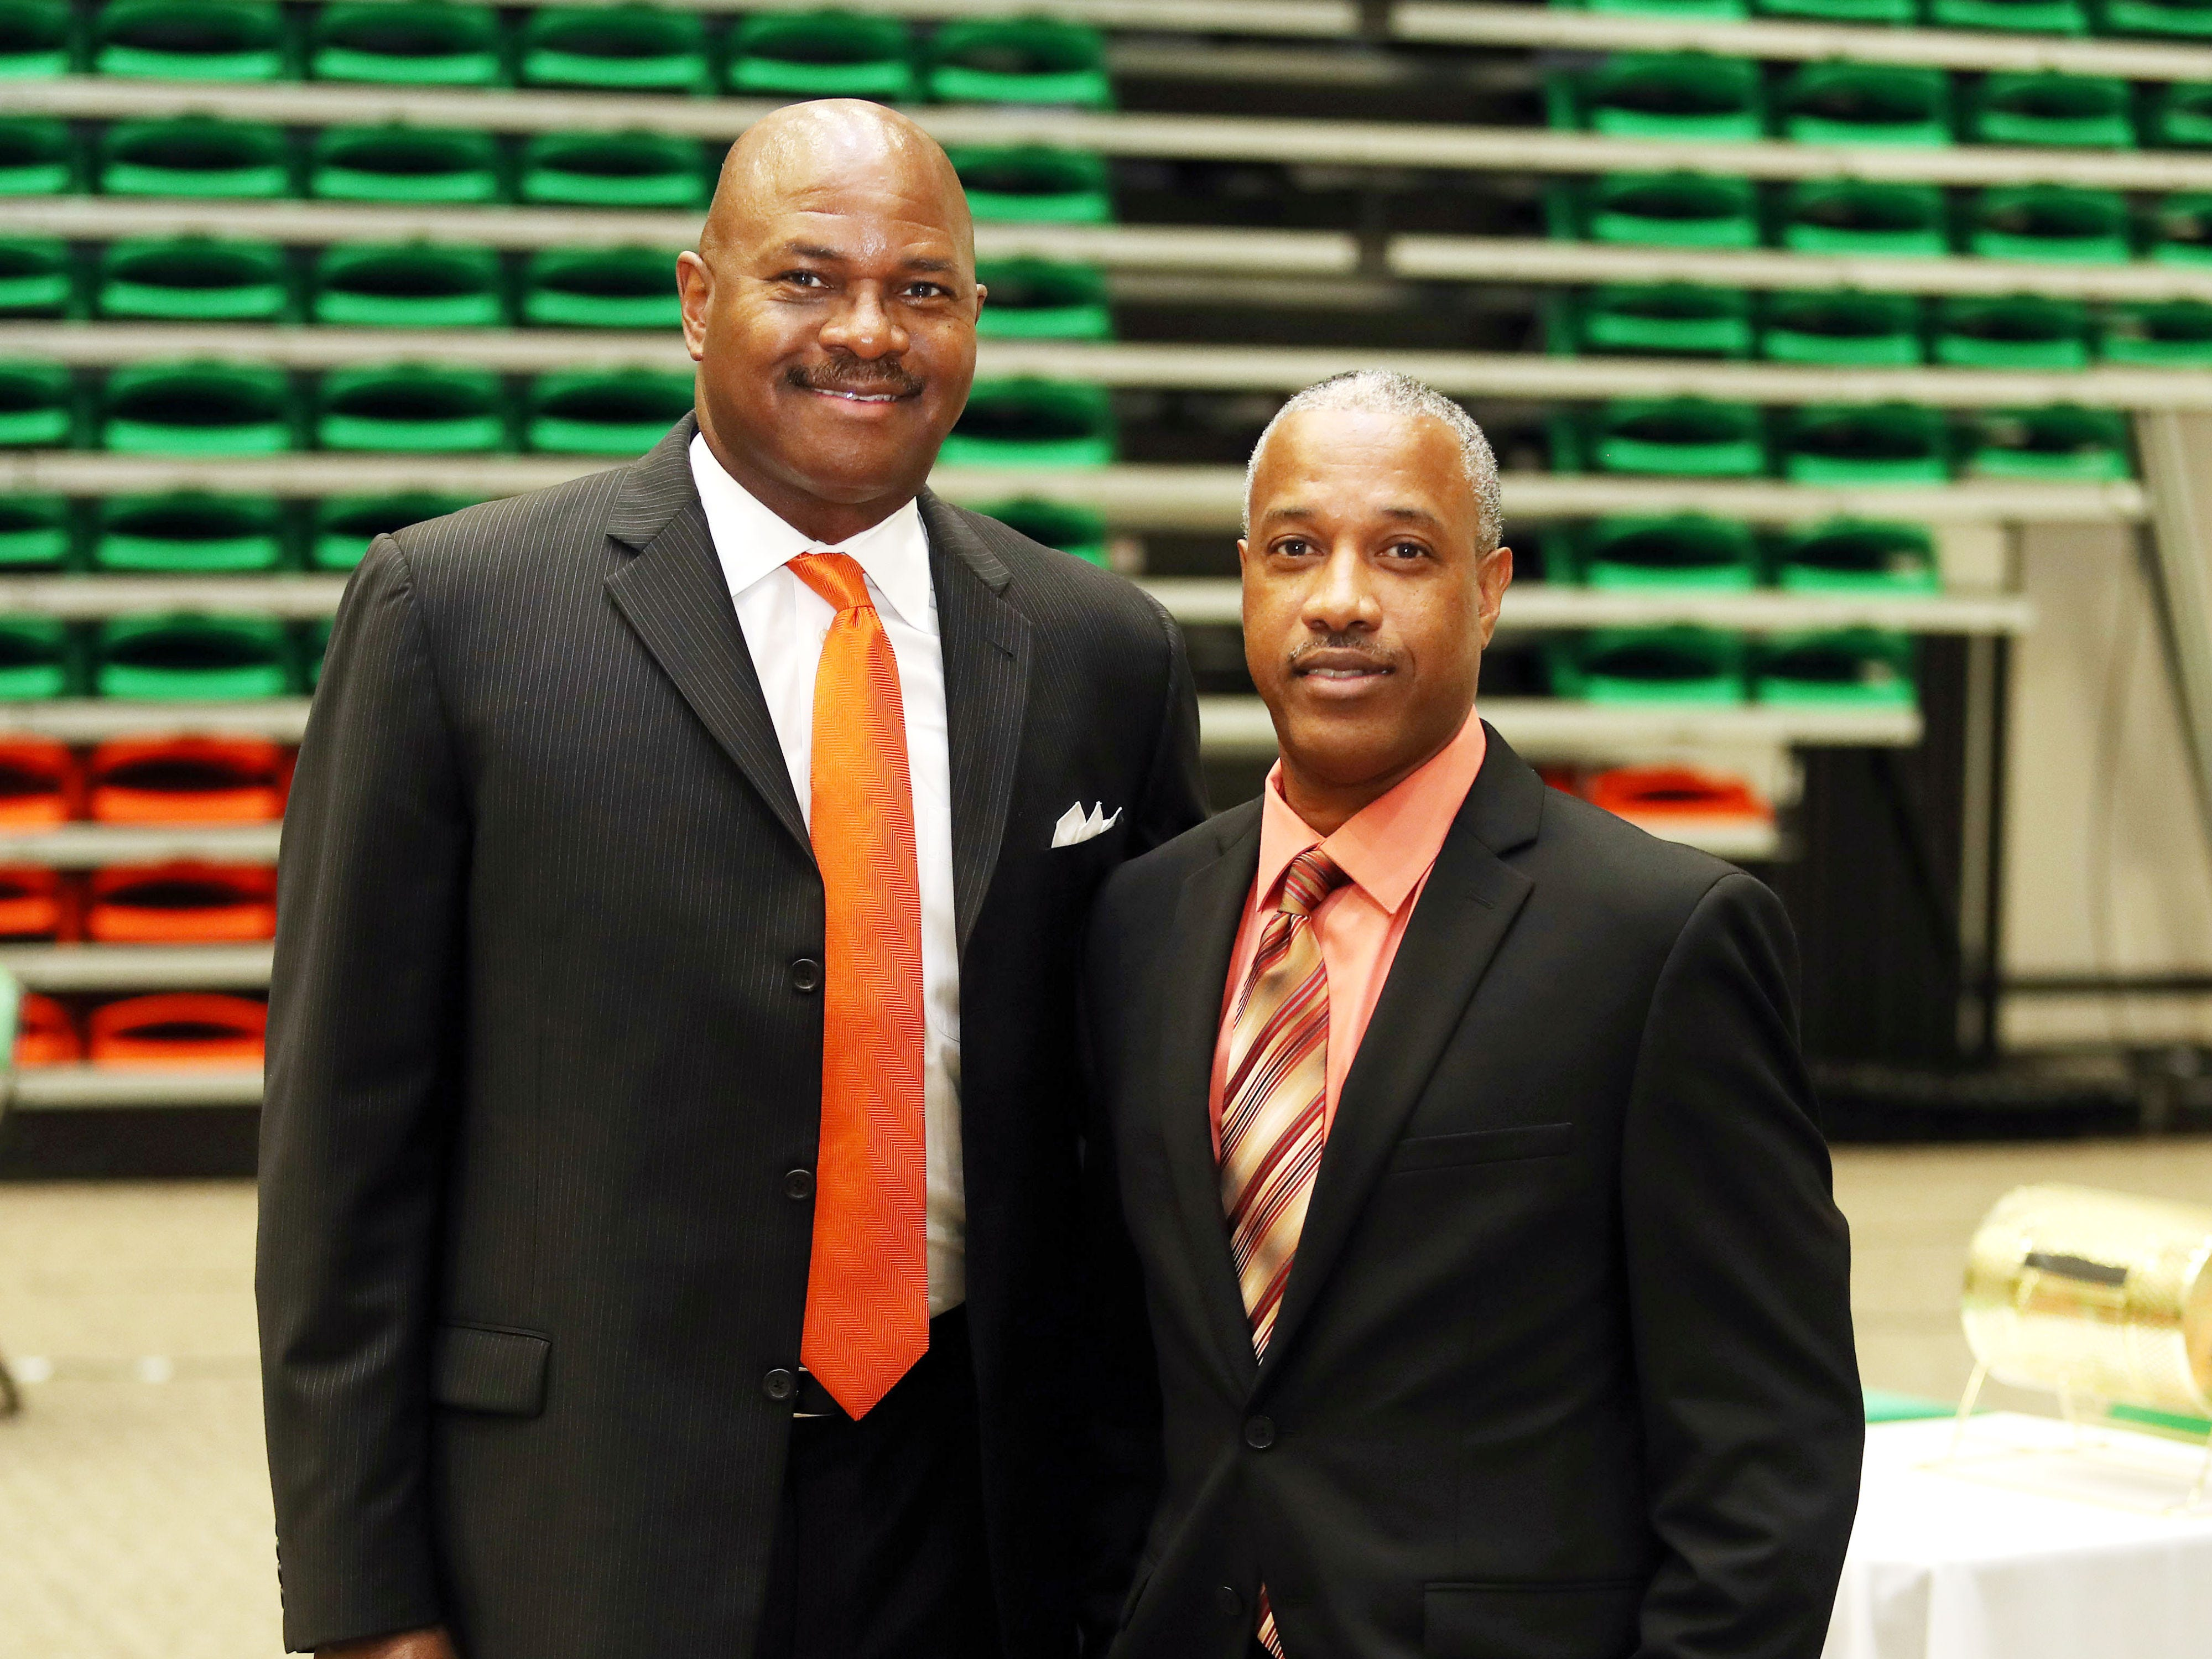 Terry Giles (right) shares a moment with FAMU basketball coach Robert McCullum. Giles was enshrined in the FAMU Sports Hall of Fame.